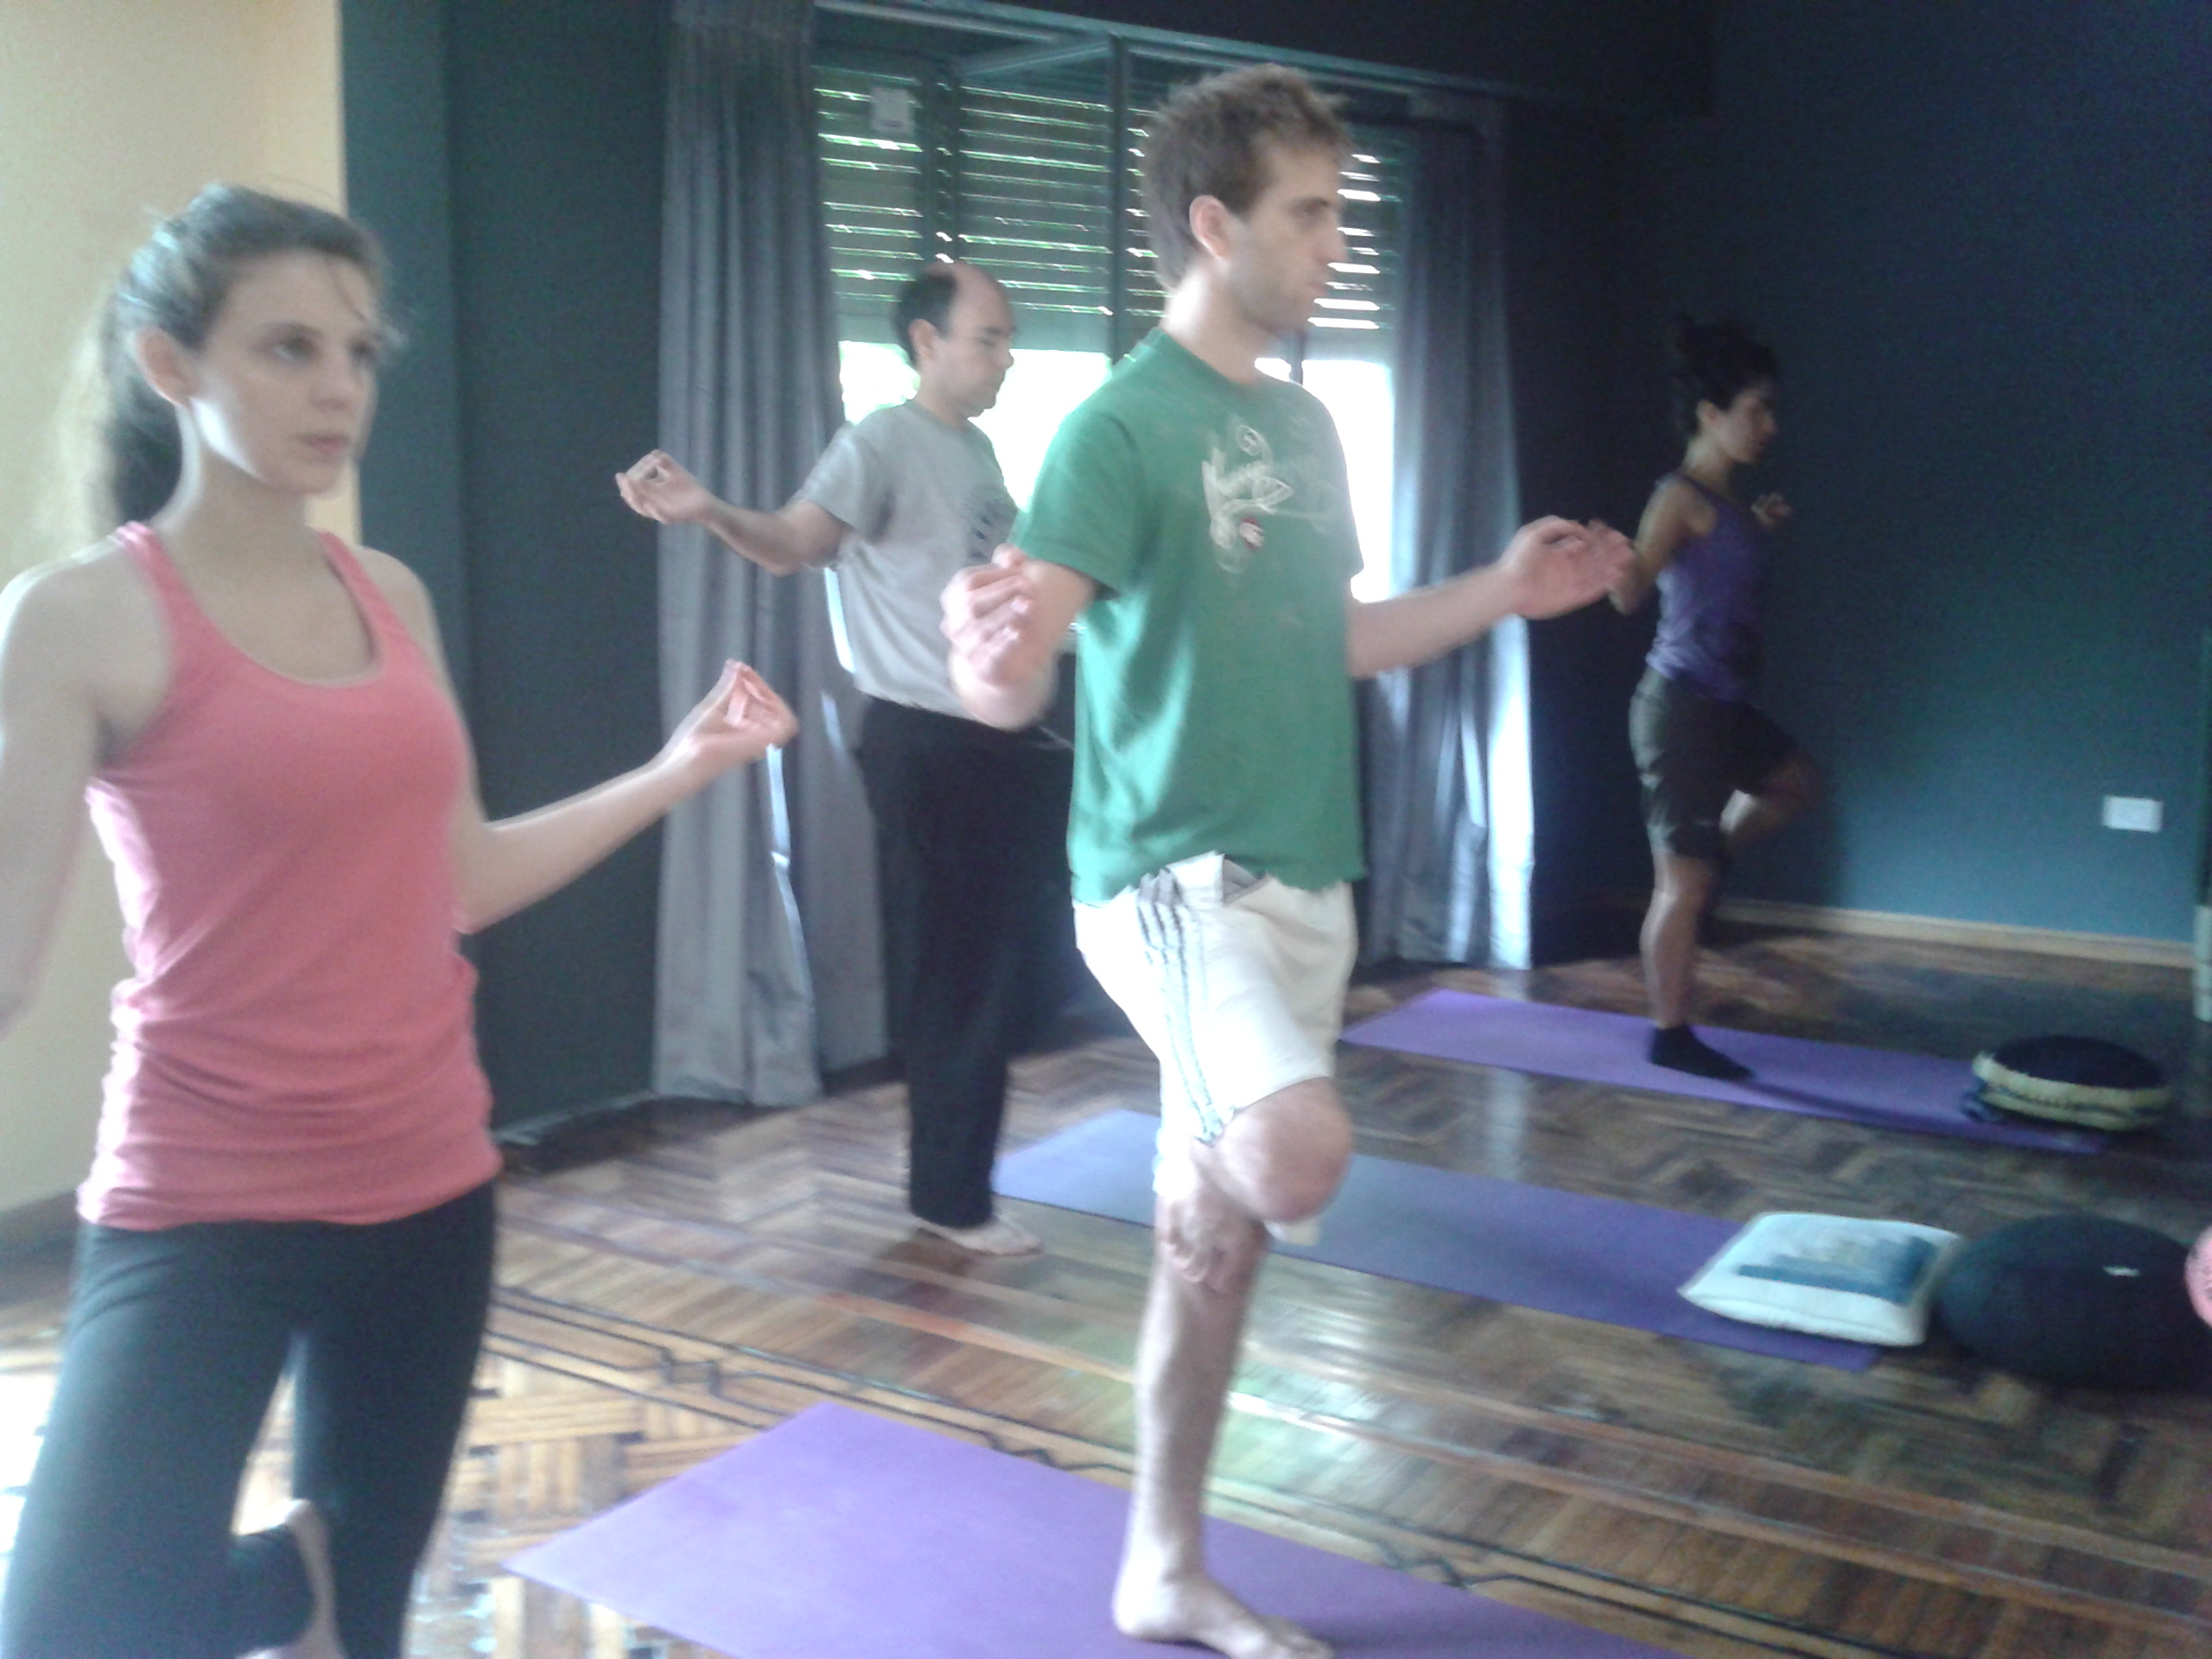 CLASE ABIERTA Y GRATUITA: WORLD YOGA DAY 2013